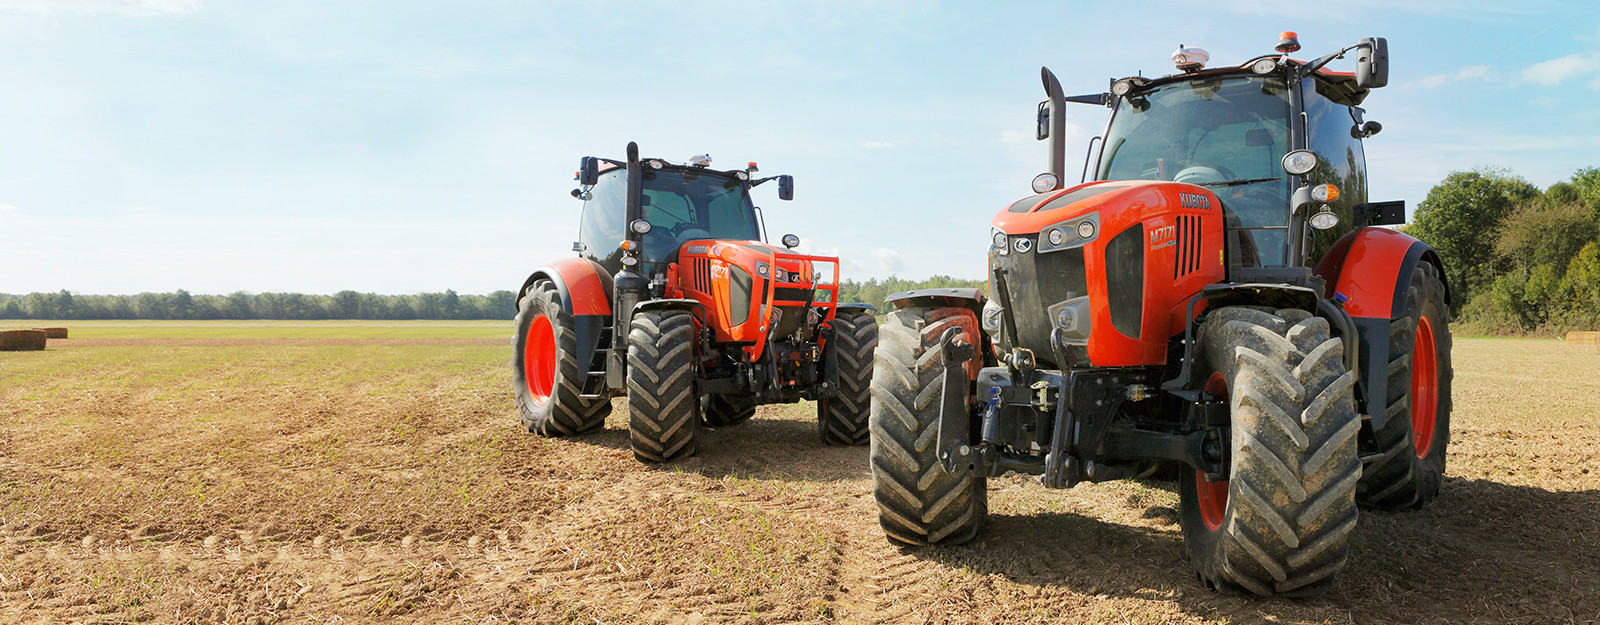 Two Kubota tractors parked in freshly cut field